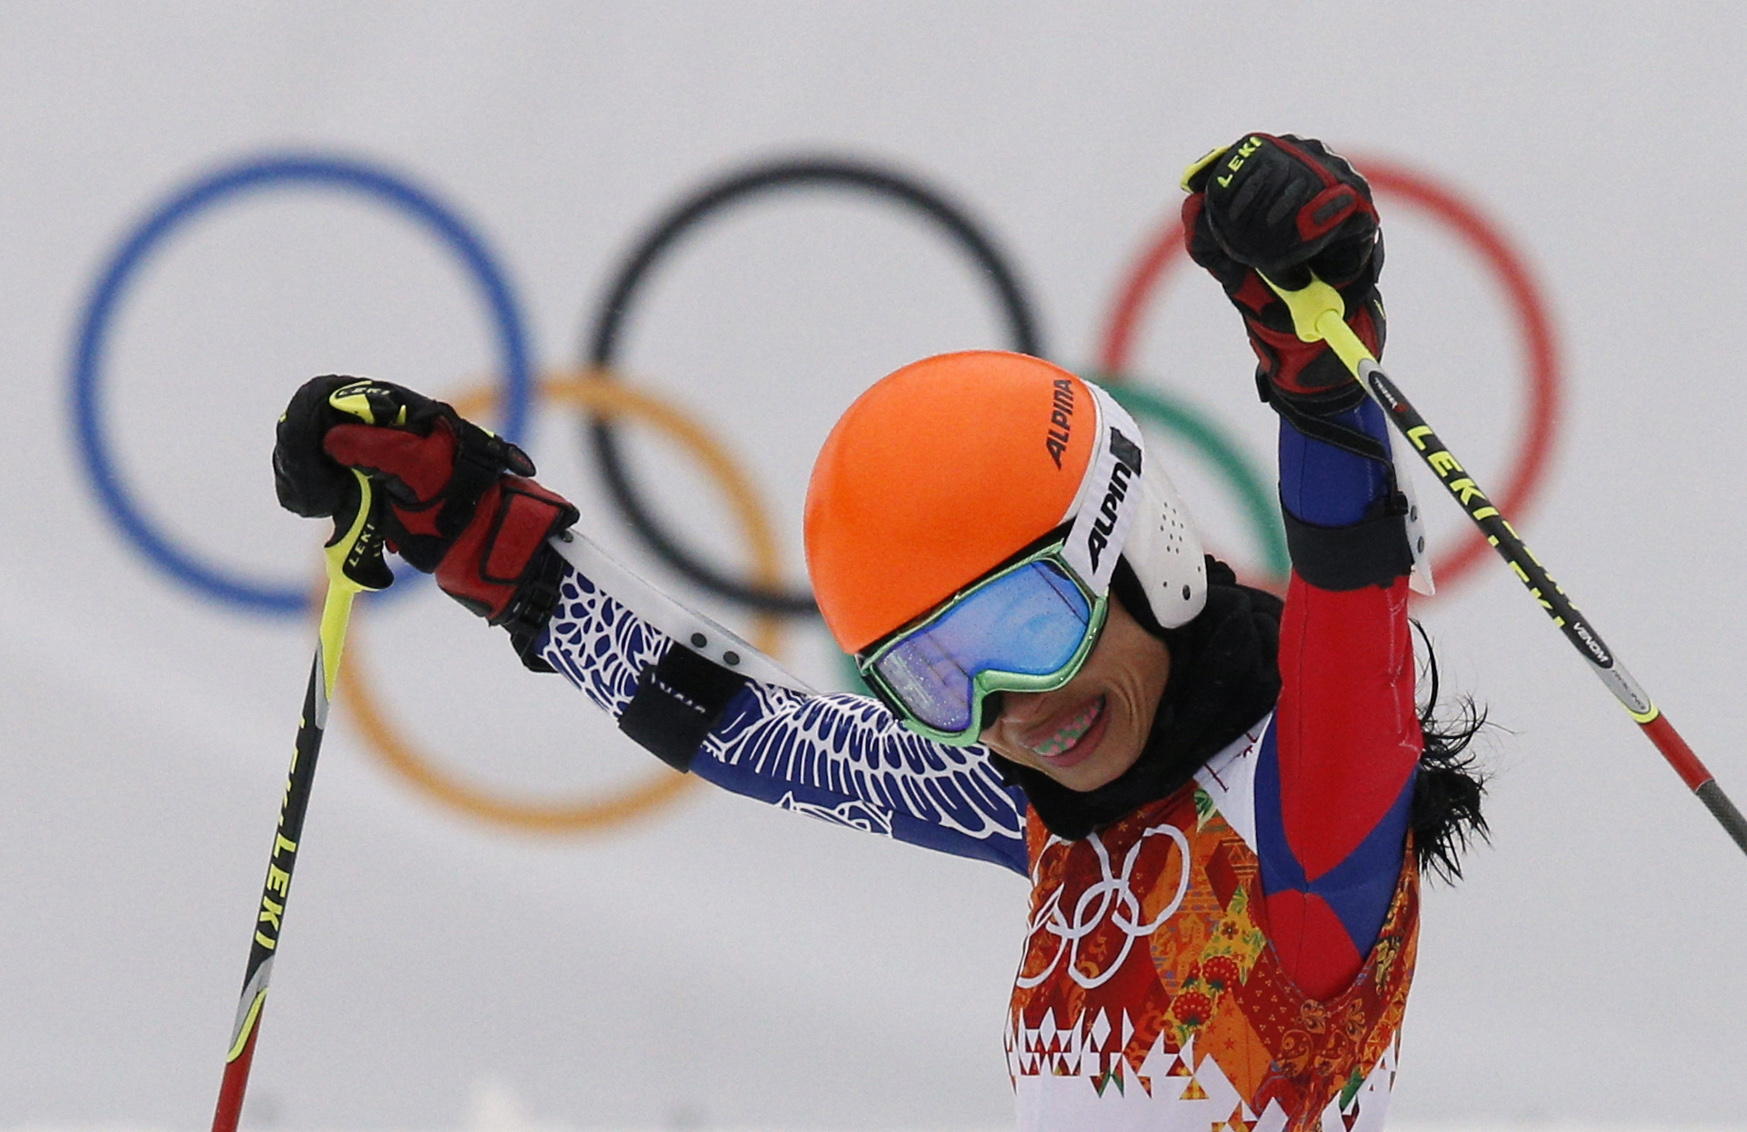 FILE - In this Tuesday, Feb. 18, 2014 file photo, violinist Vanessa Mae competing under her father's surname as Vanessa Vanakorn for Thailand, celebrates after completing the first run of the women's giant slalom at the Sochi 2014 Winter Olympics in Krasn